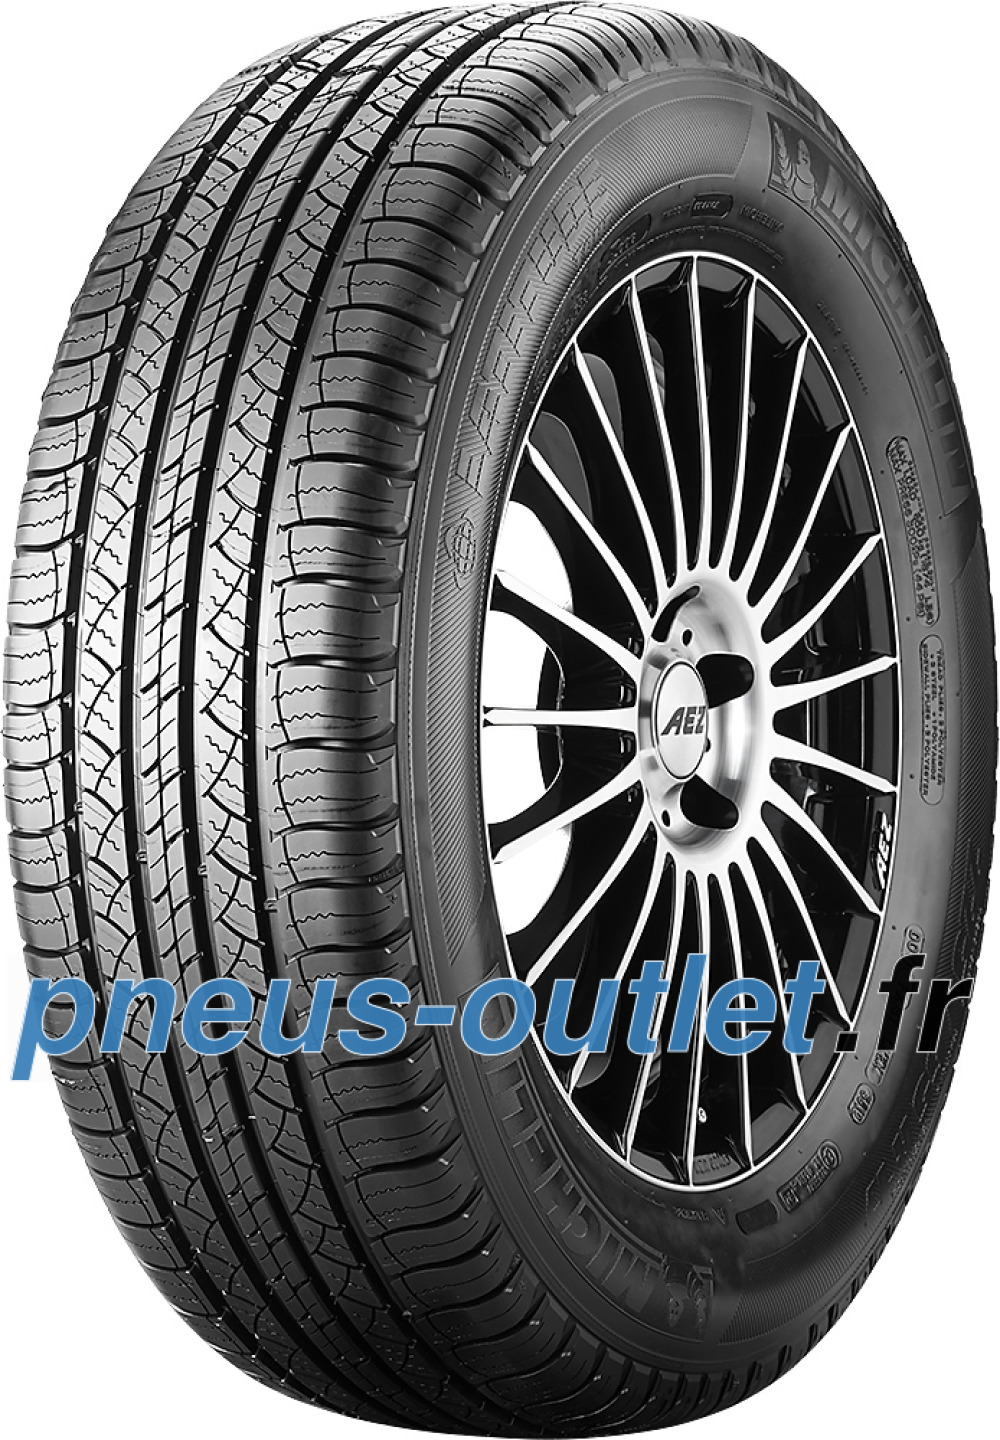 Michelin Latitude Tour ( P265/65 R17 110S )